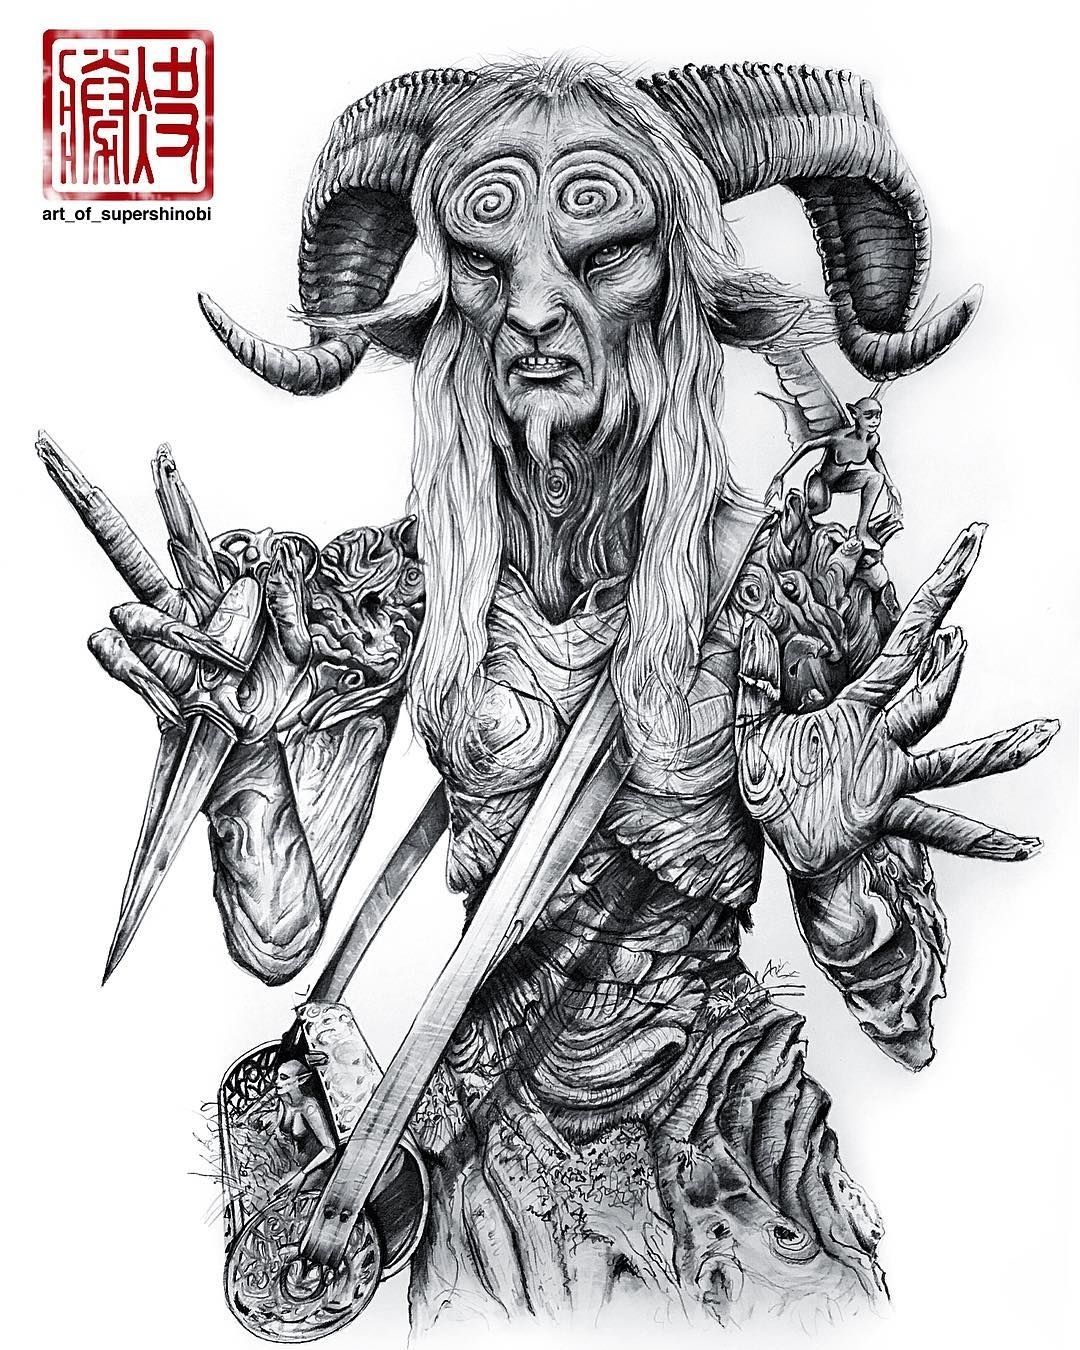 Regram art of supershinobi the faun pans labyrinth loved this movie by guillermo del toro hope you guys enjoyed seeing the progress 10hrs using